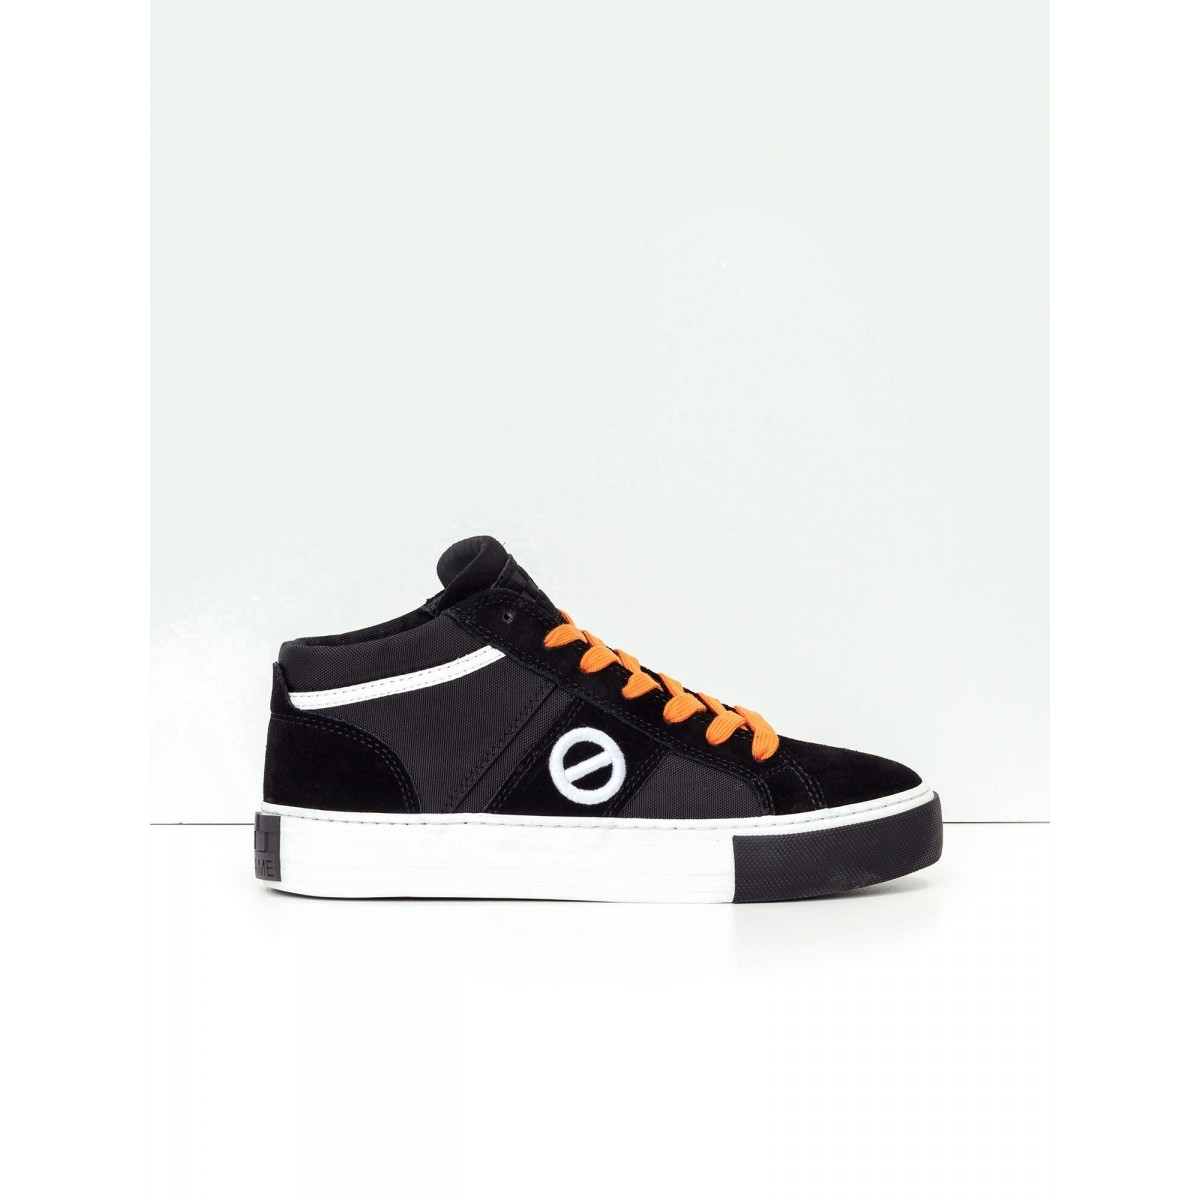 No Name Arcade Basket - Suede/Nylon - Black/Black